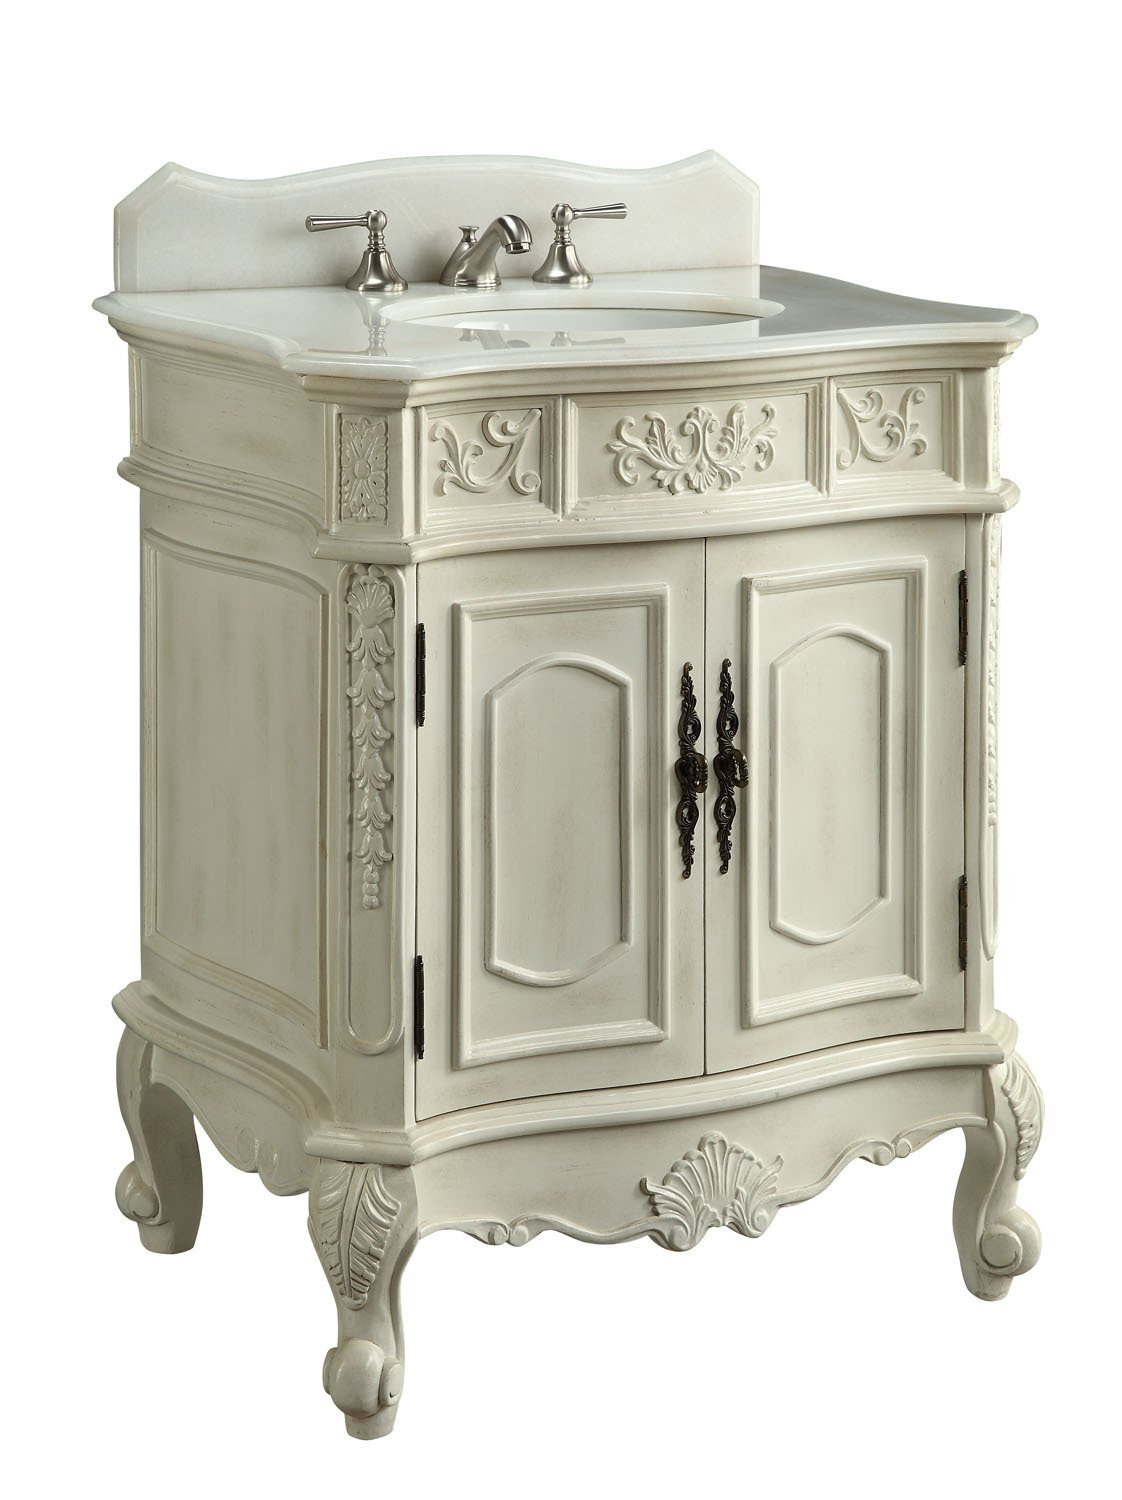 30 Inch Bathroom Vanity Cabinet White adelina 30 inch antique white single sink bathroom vanity, antique